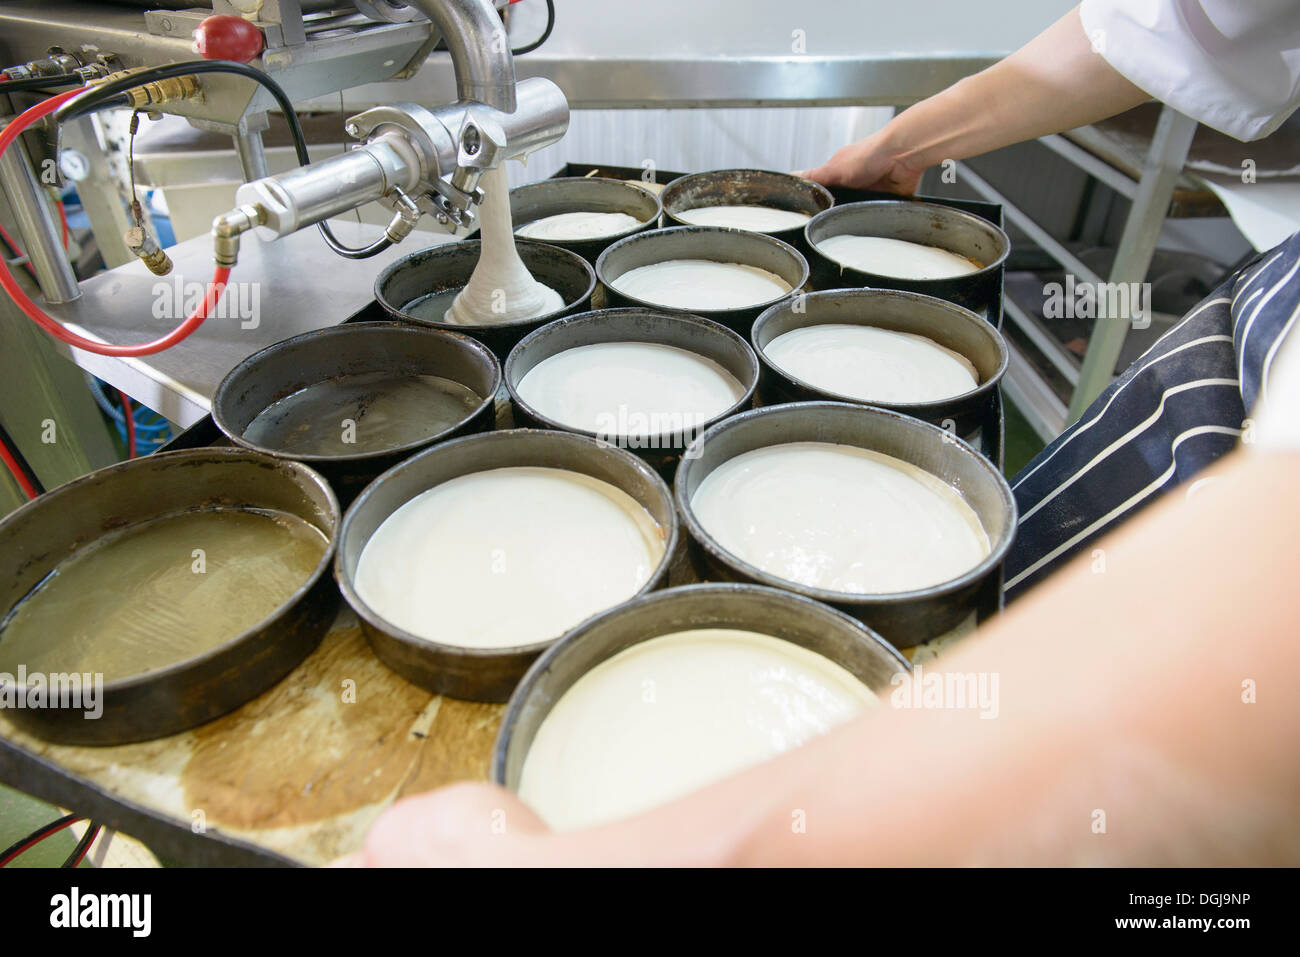 Baker measuring out dough in dishes, close up - Stock Image